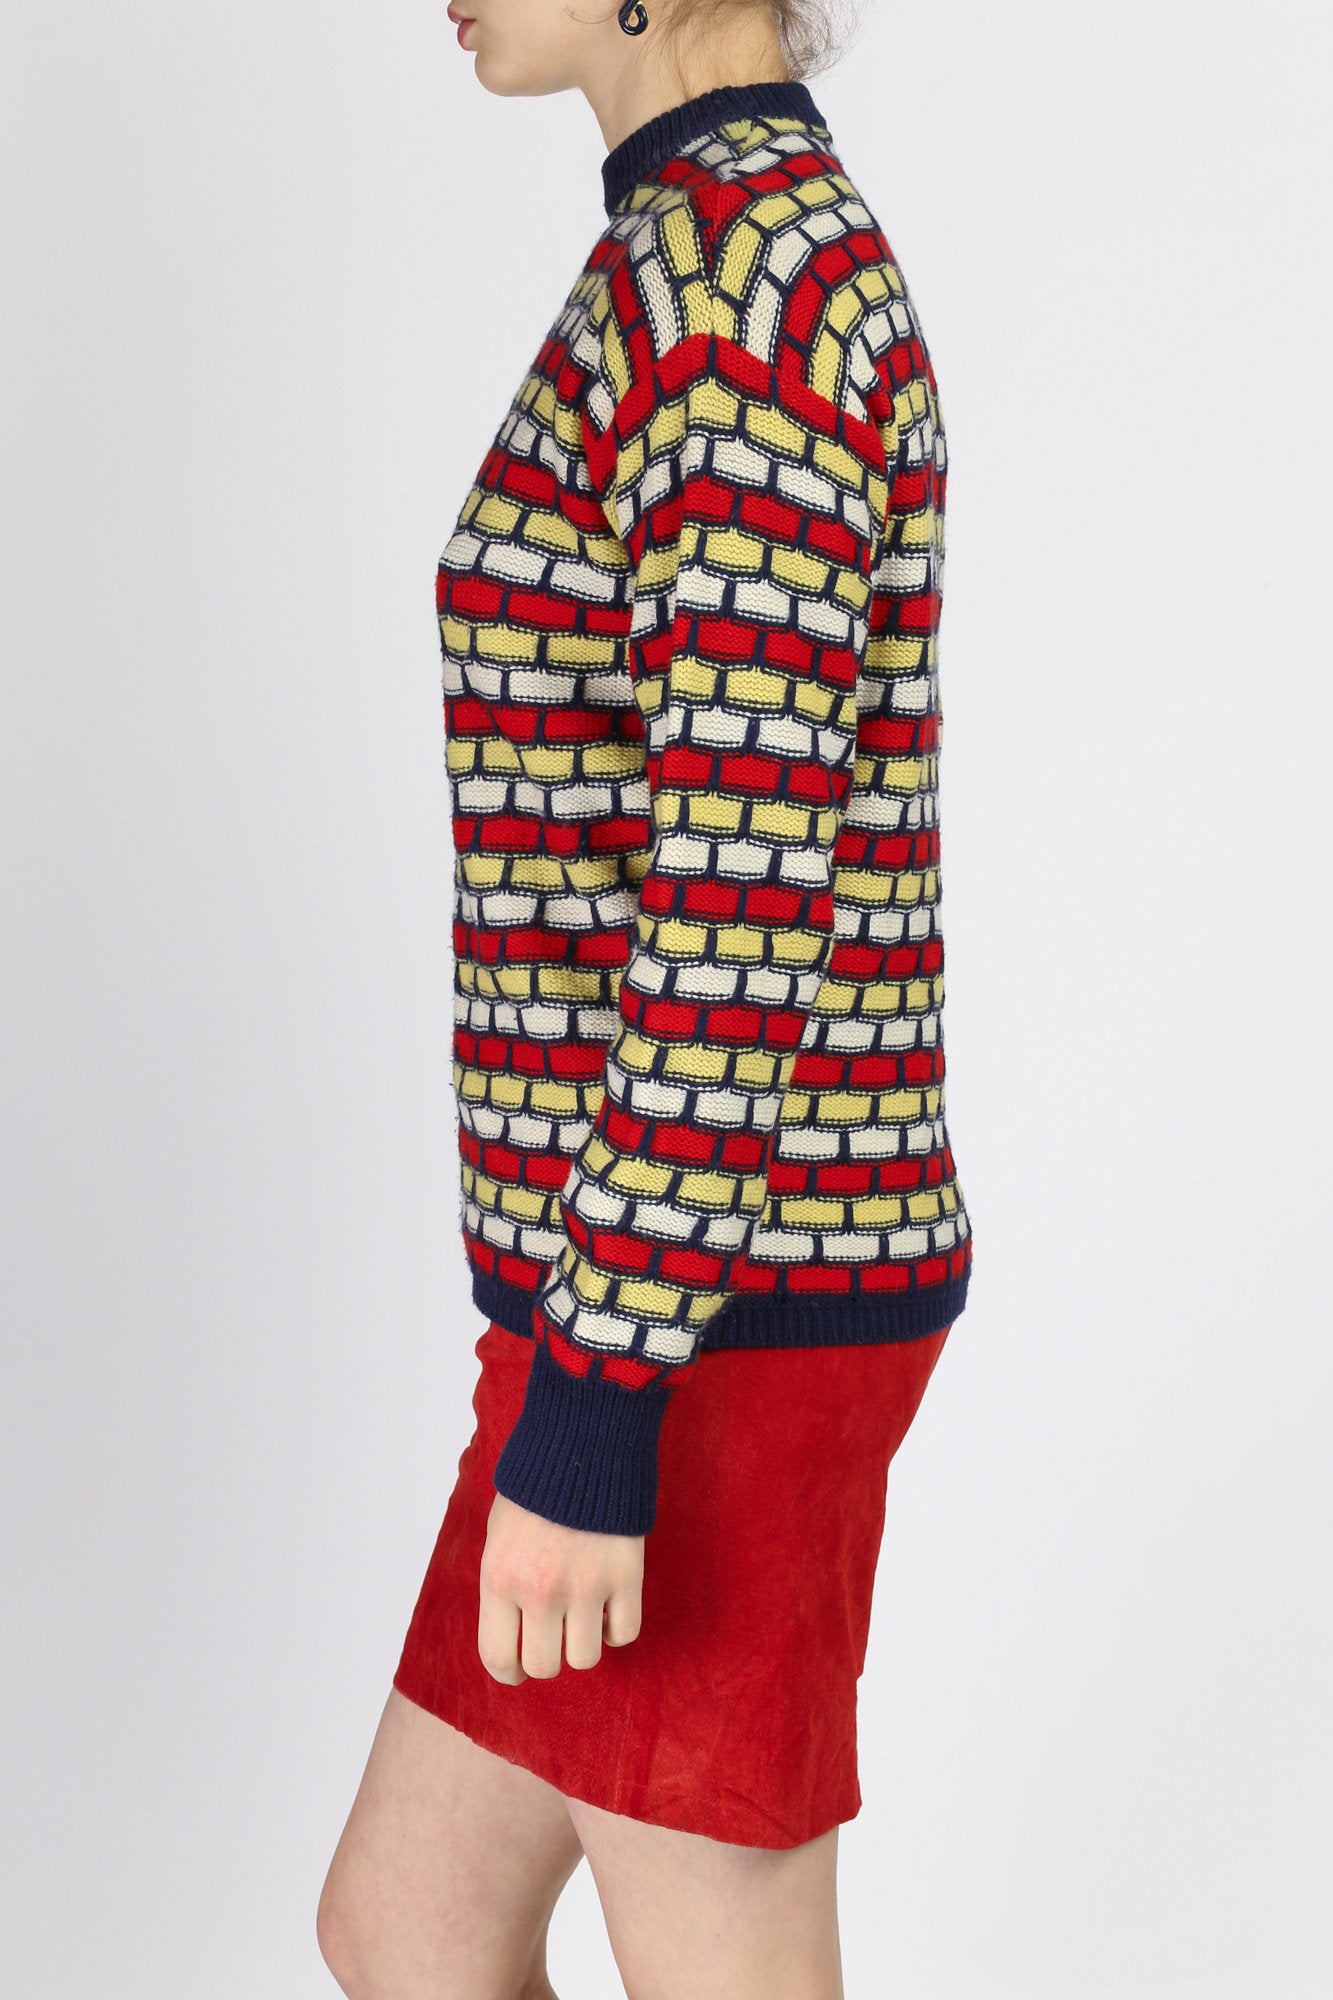 Retro 70s Colorful Mockneck Sweater - Extra Small